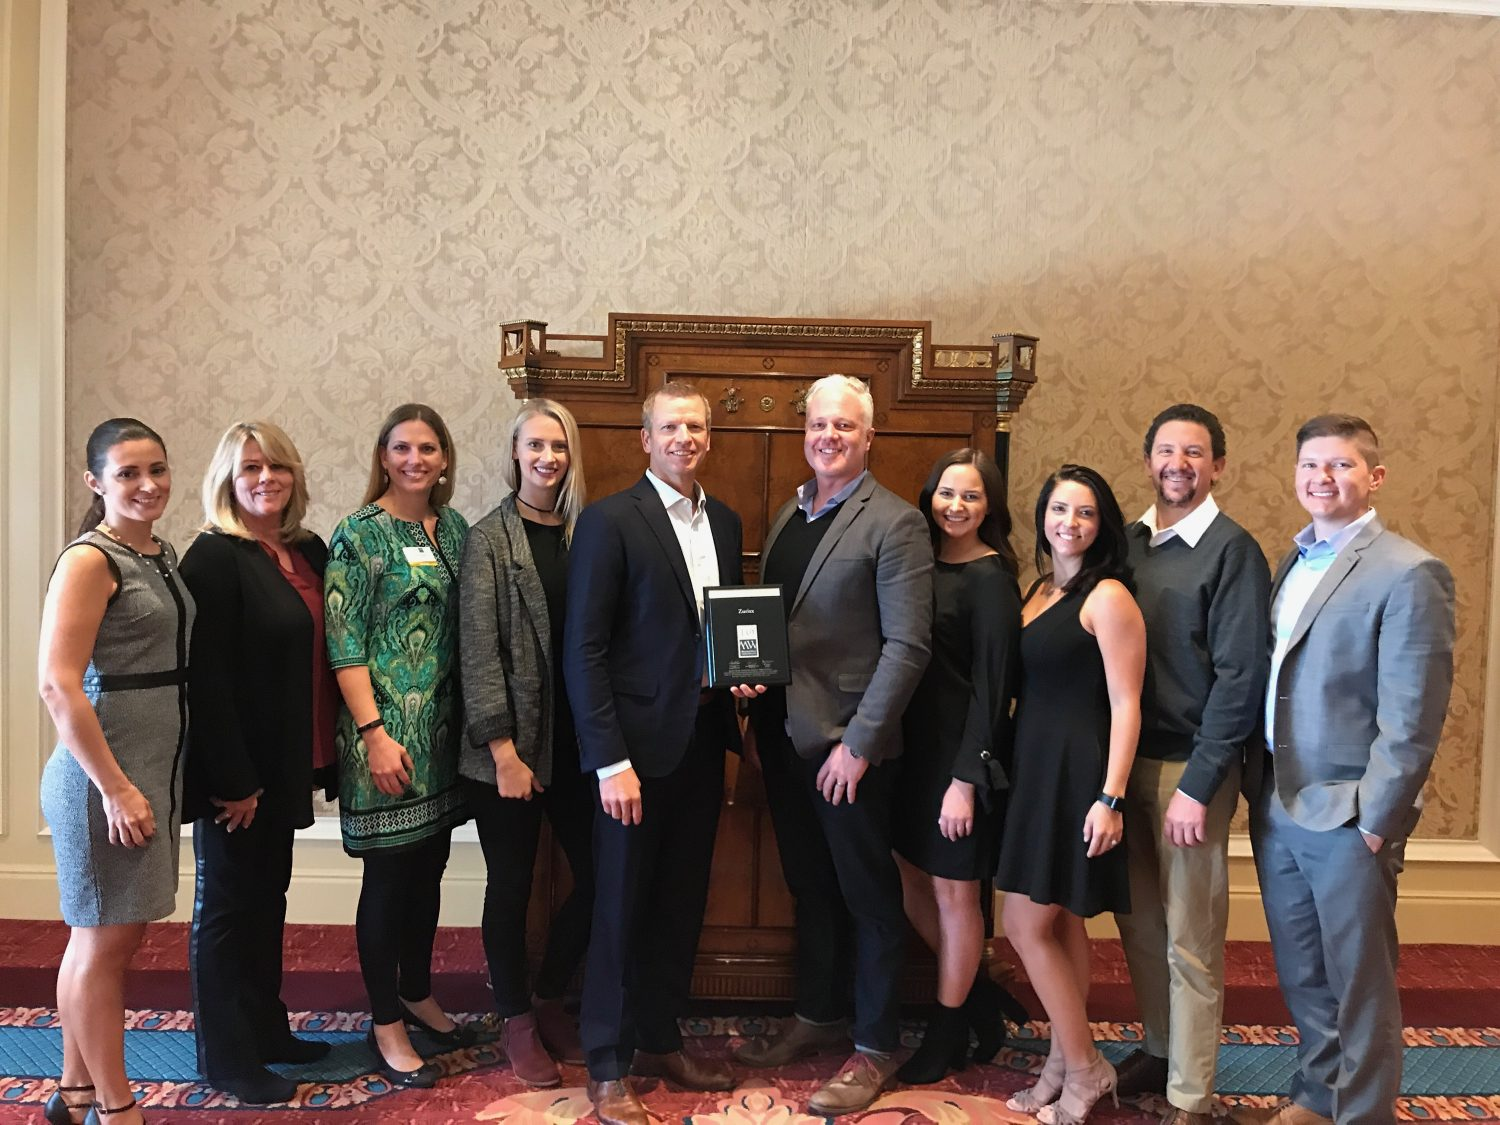 Zurixx was named to MountainWest Capital Network's 2017 Utah 100. The company was recognized as one of the fastest growing company's in Utah.